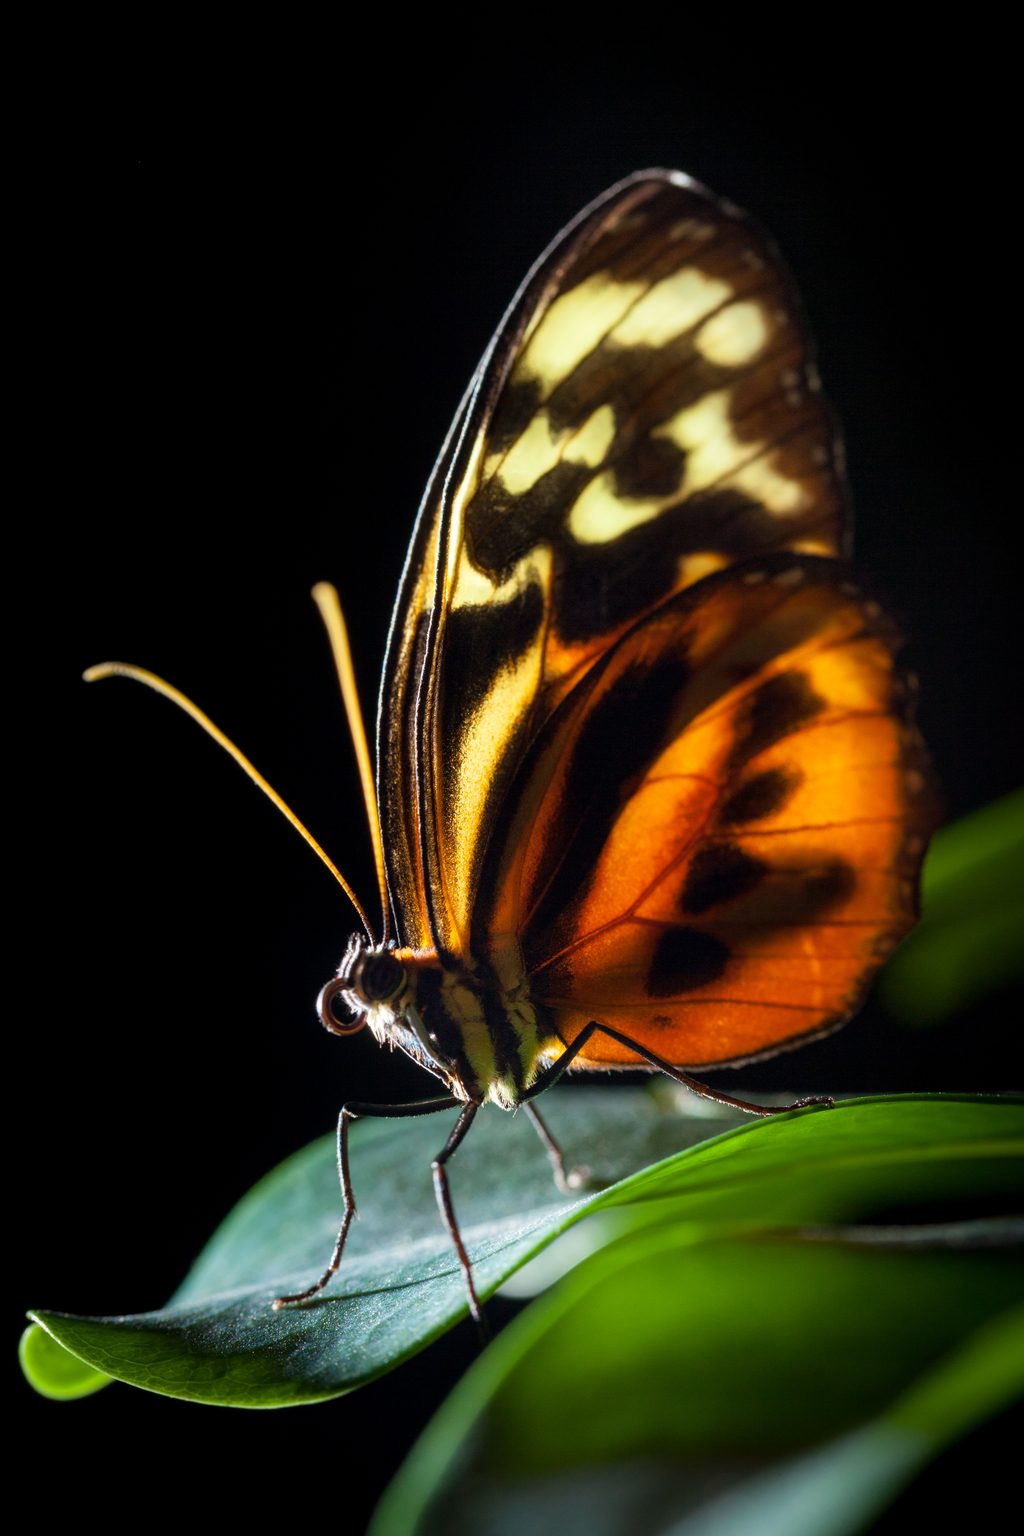 Most recent image: Atomic Butterfly